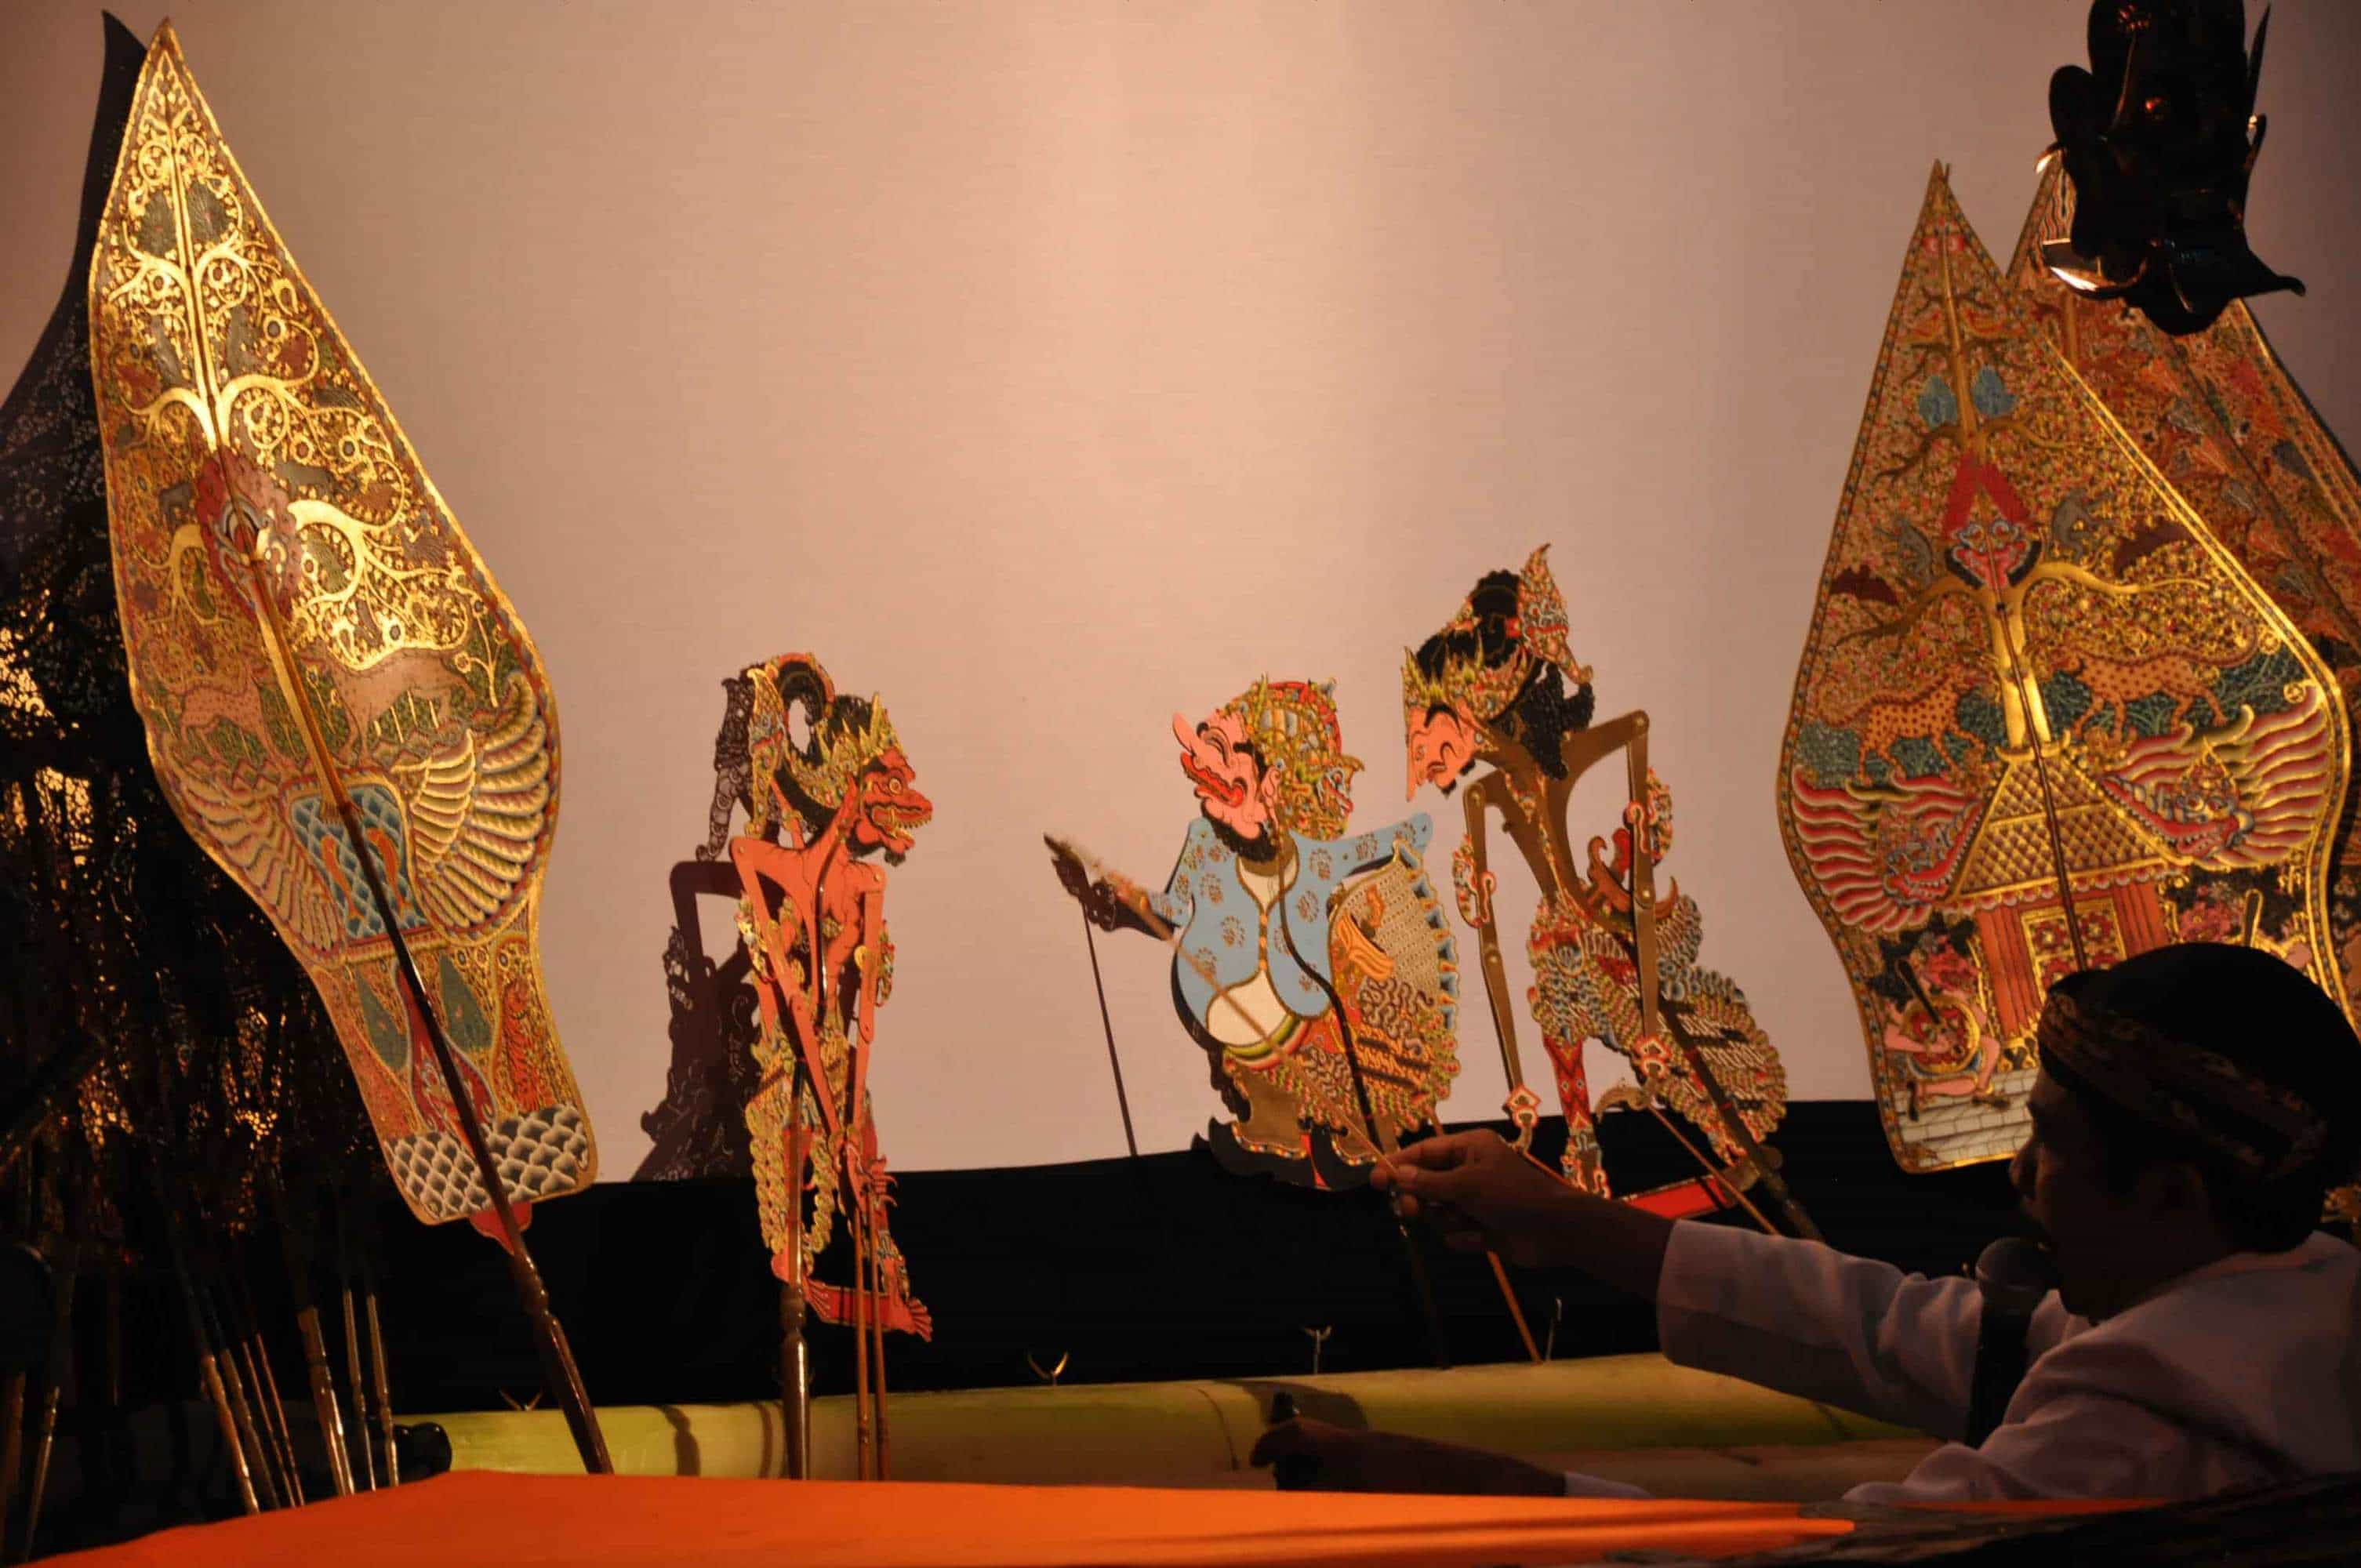 Wayang thèâtre d'ombres traditions